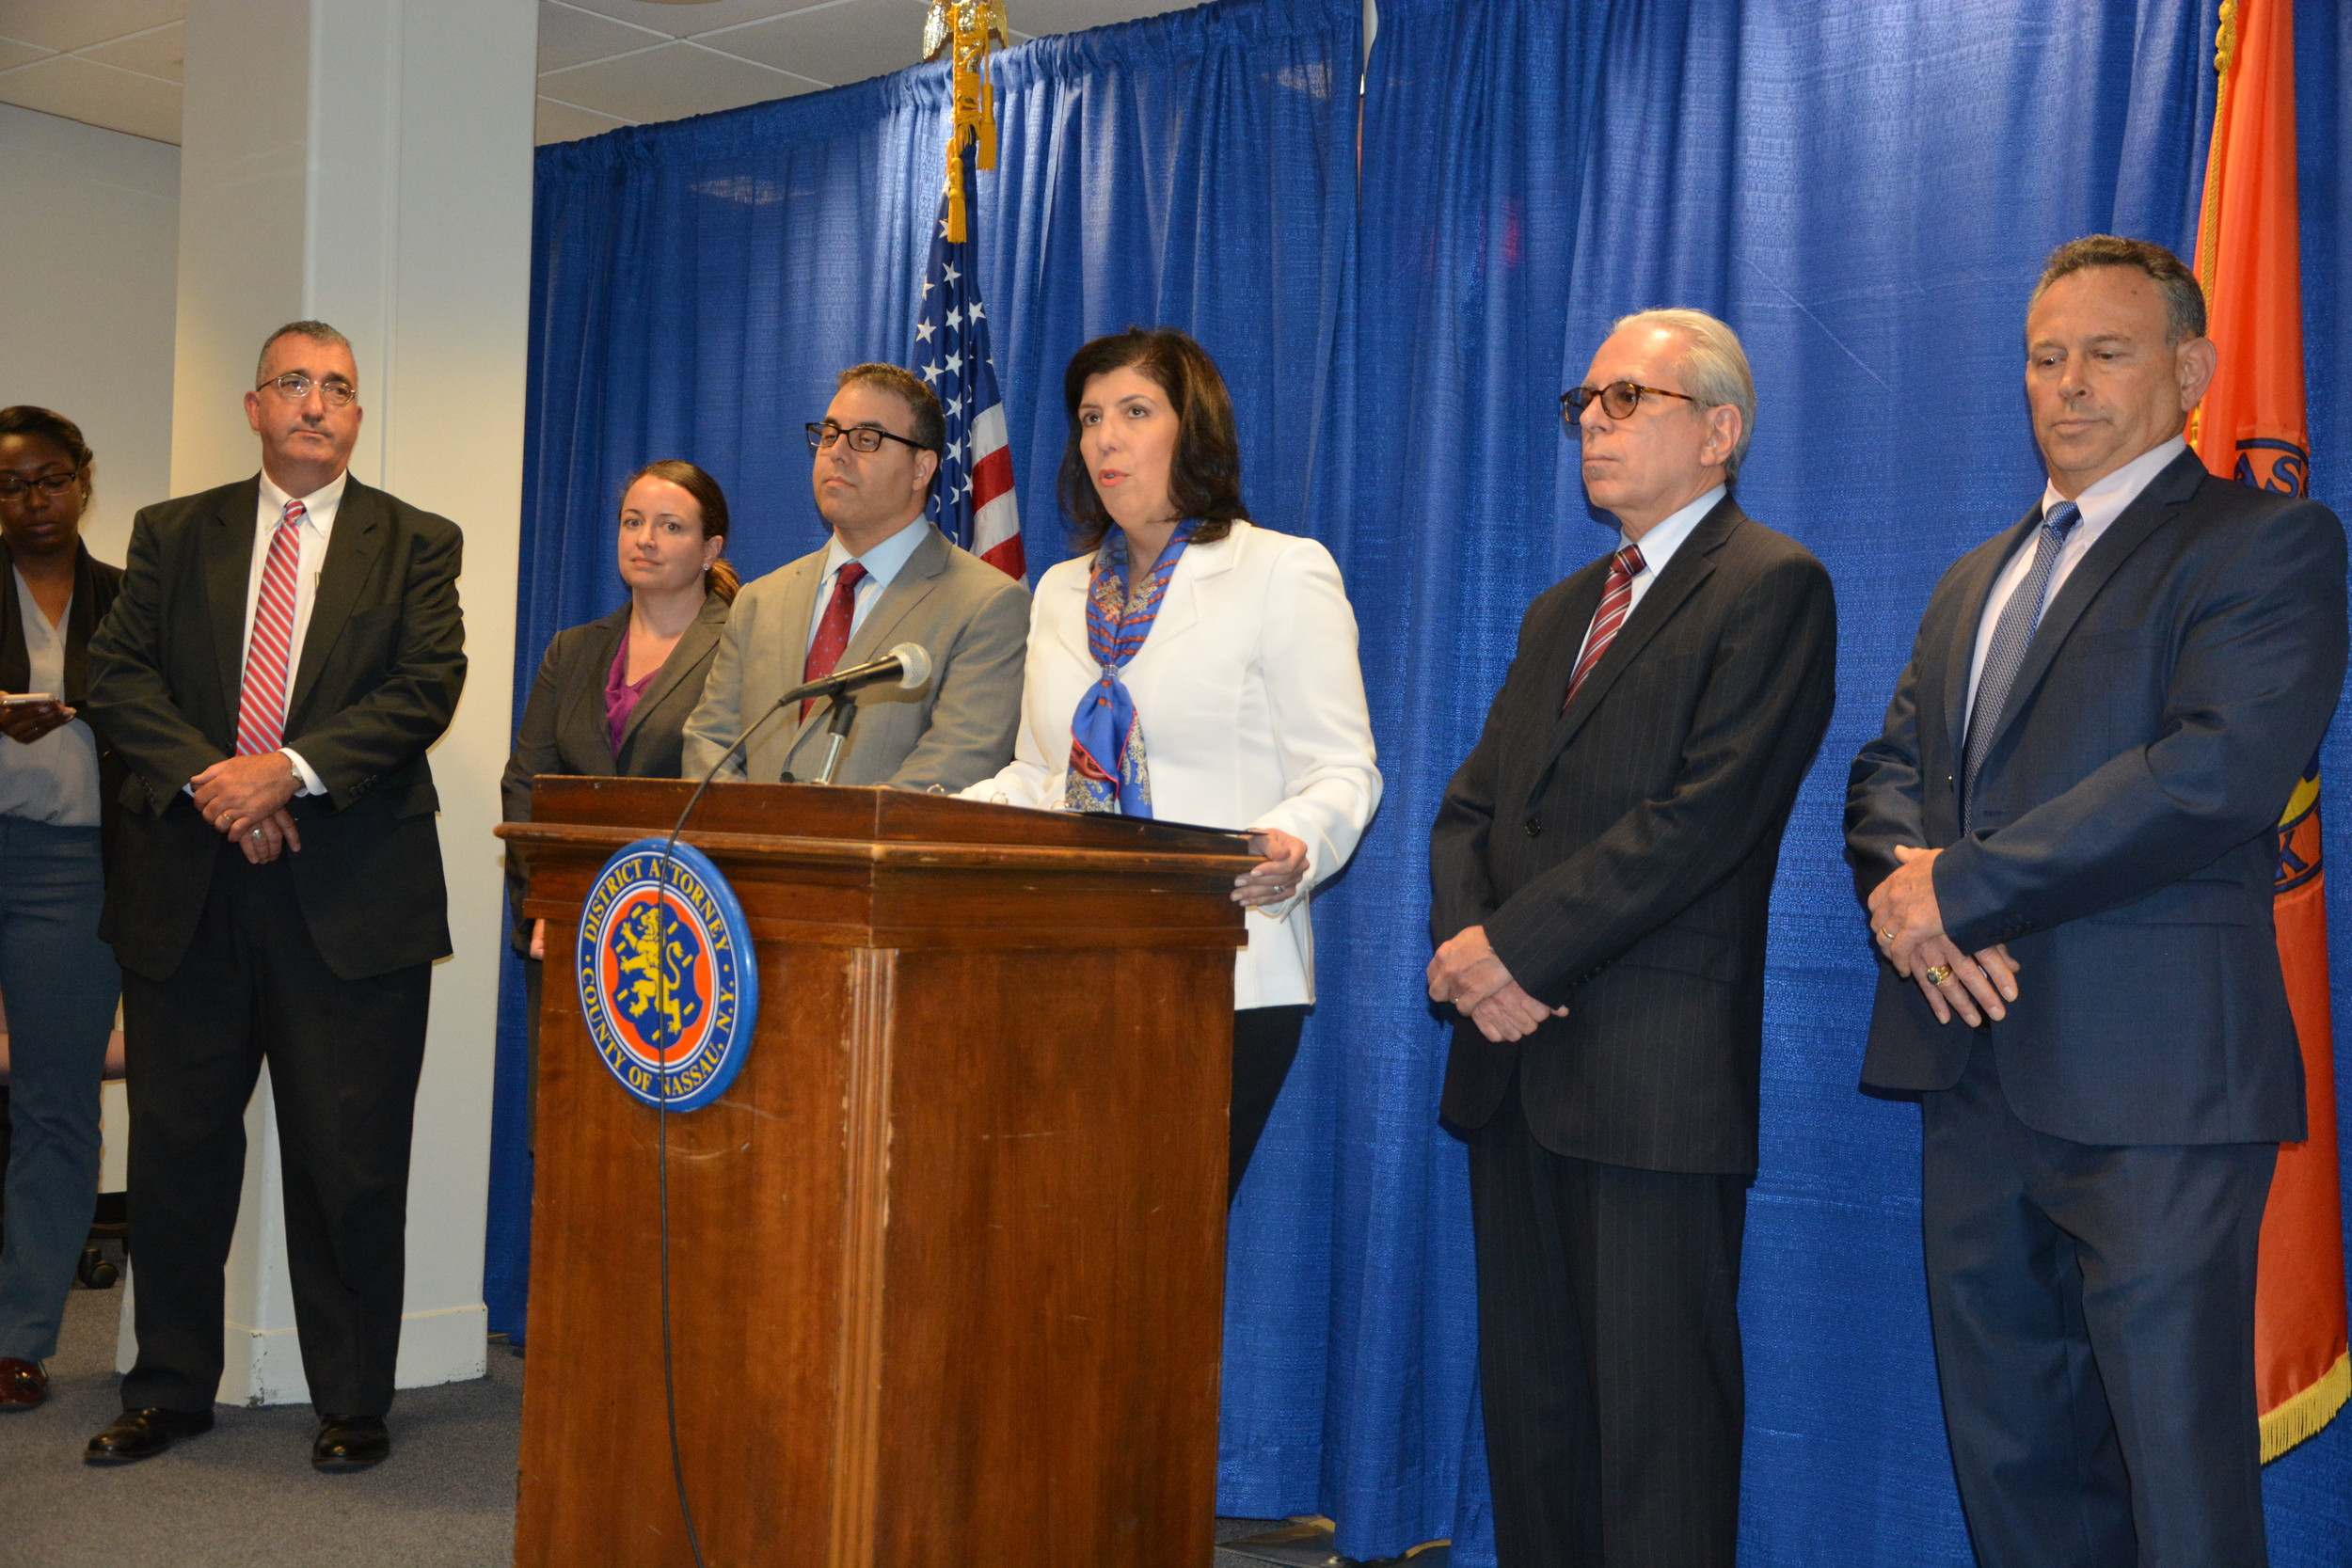 Nassau County District Attorney Madeline Singas held a press conference after the indictments of several Oyster Bay public officials on June 29.